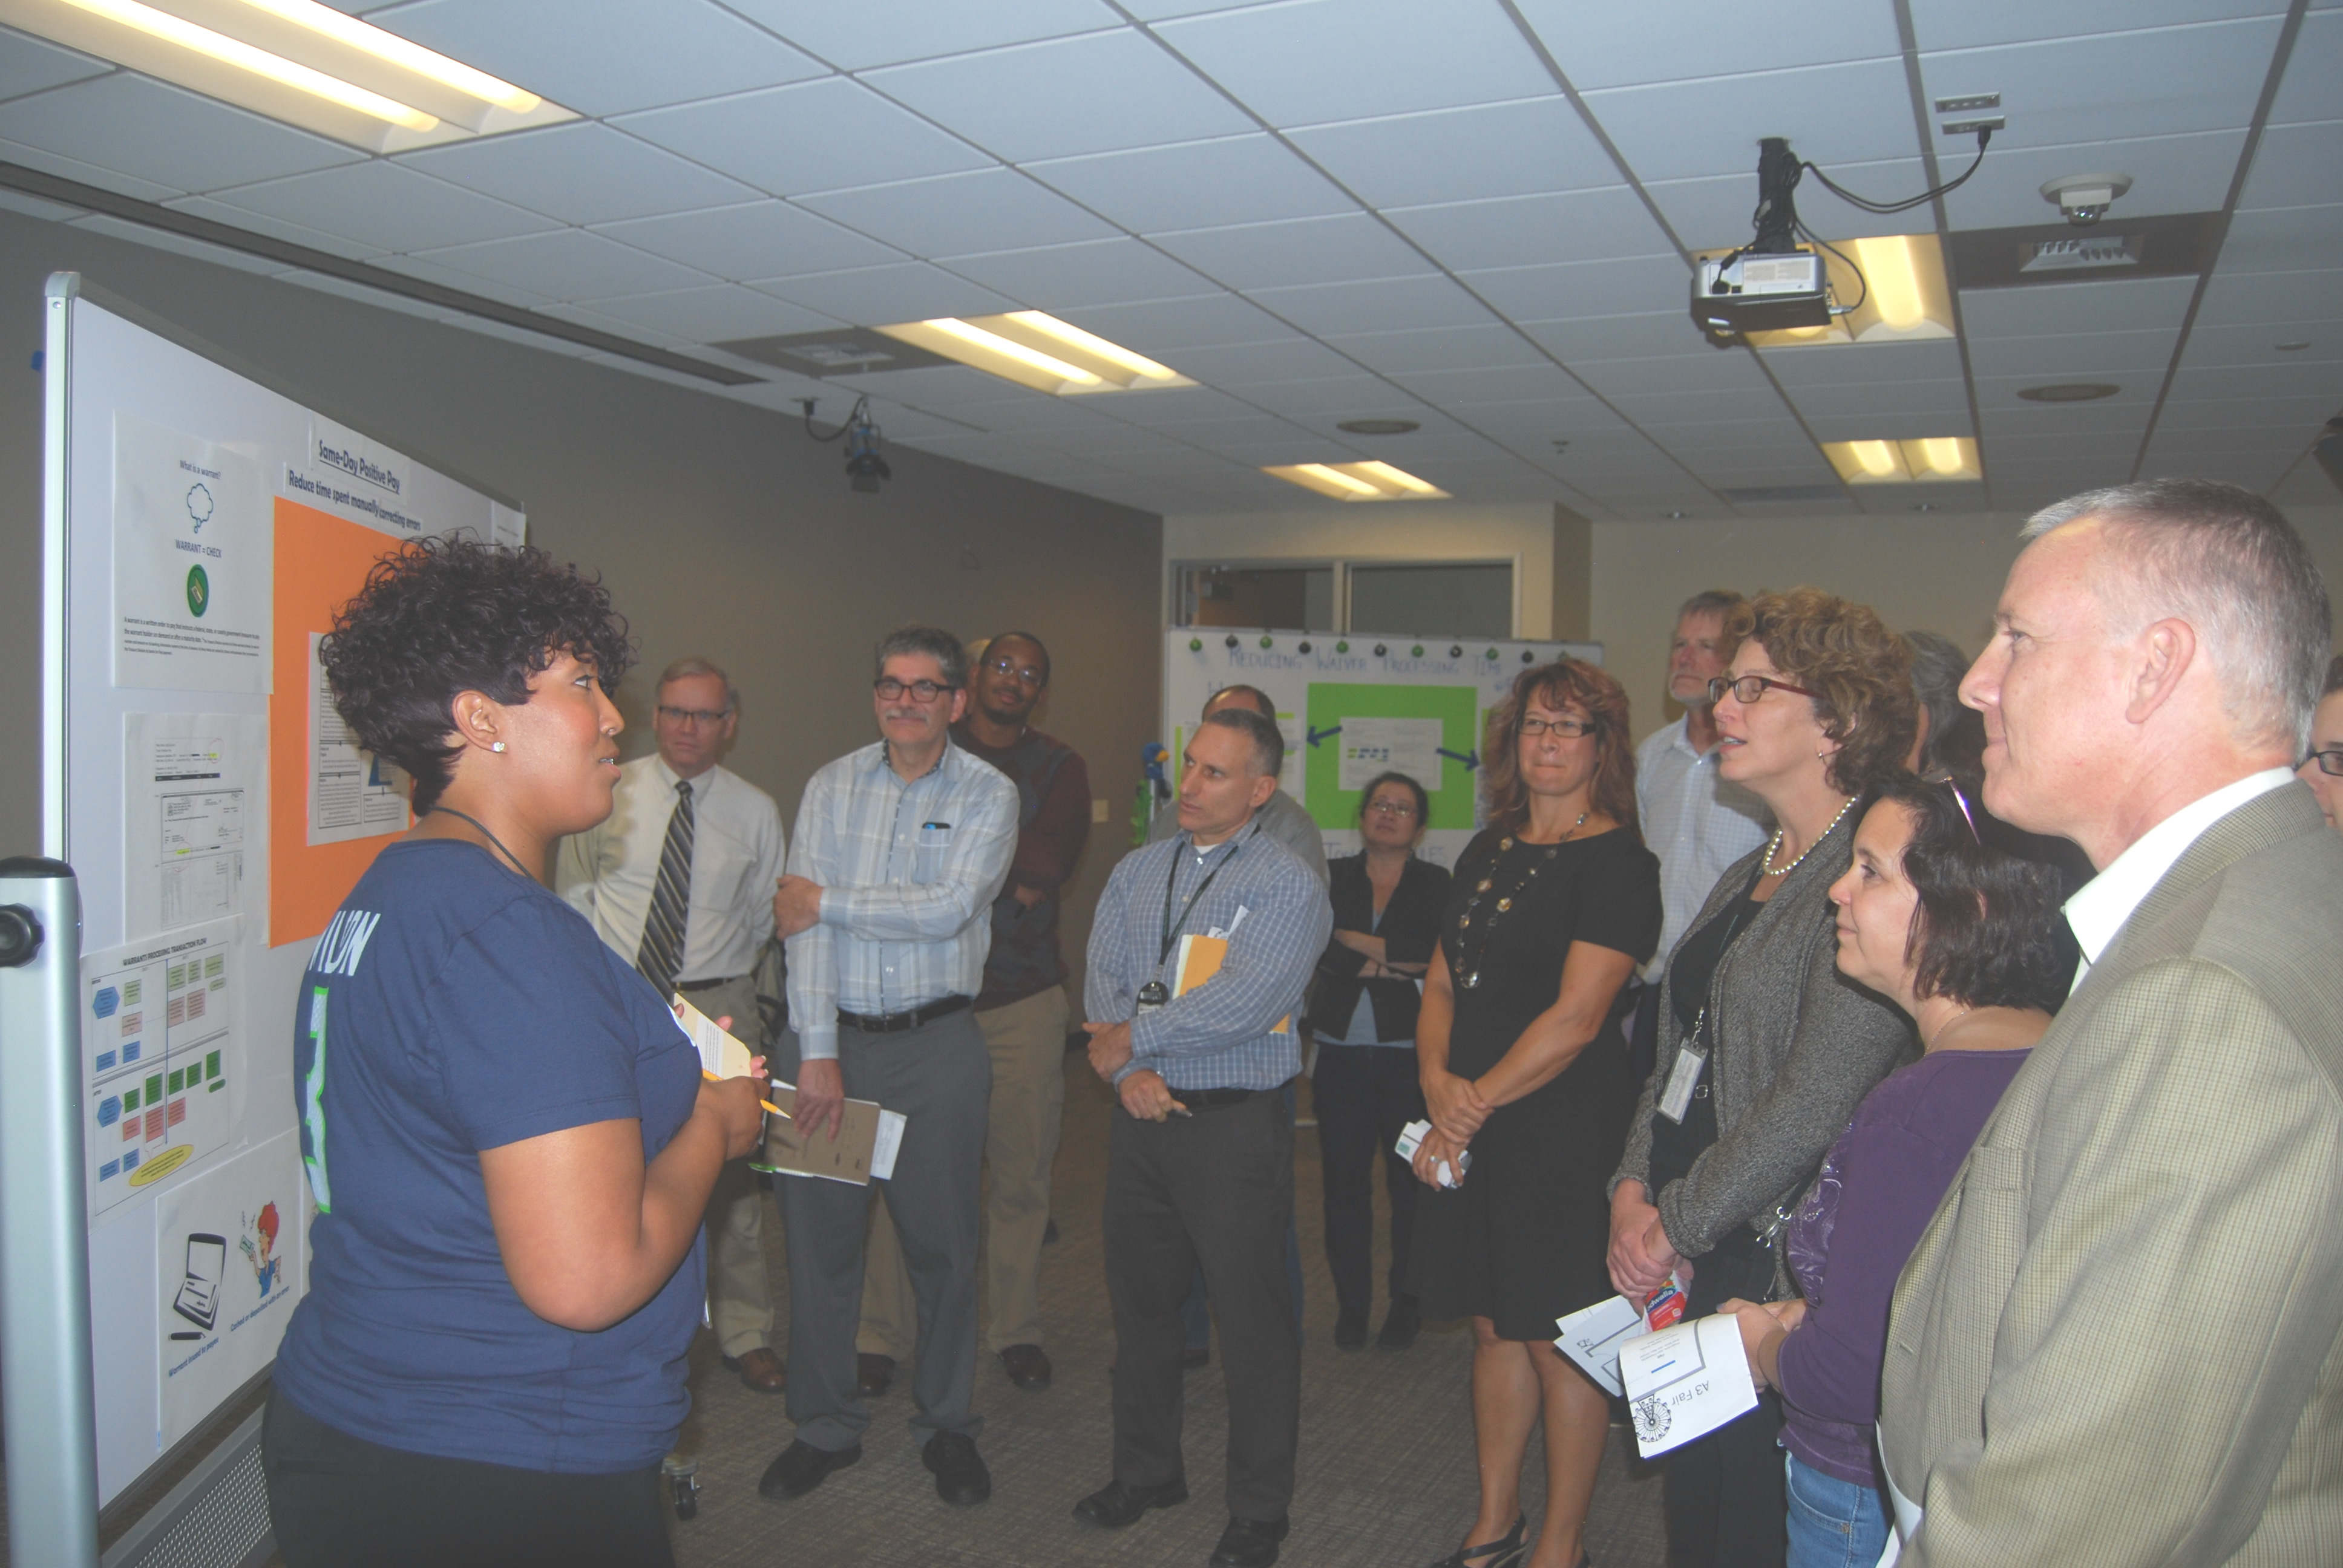 Fiscal Specialist Charla McCoy discusses her A3 project with the audience.